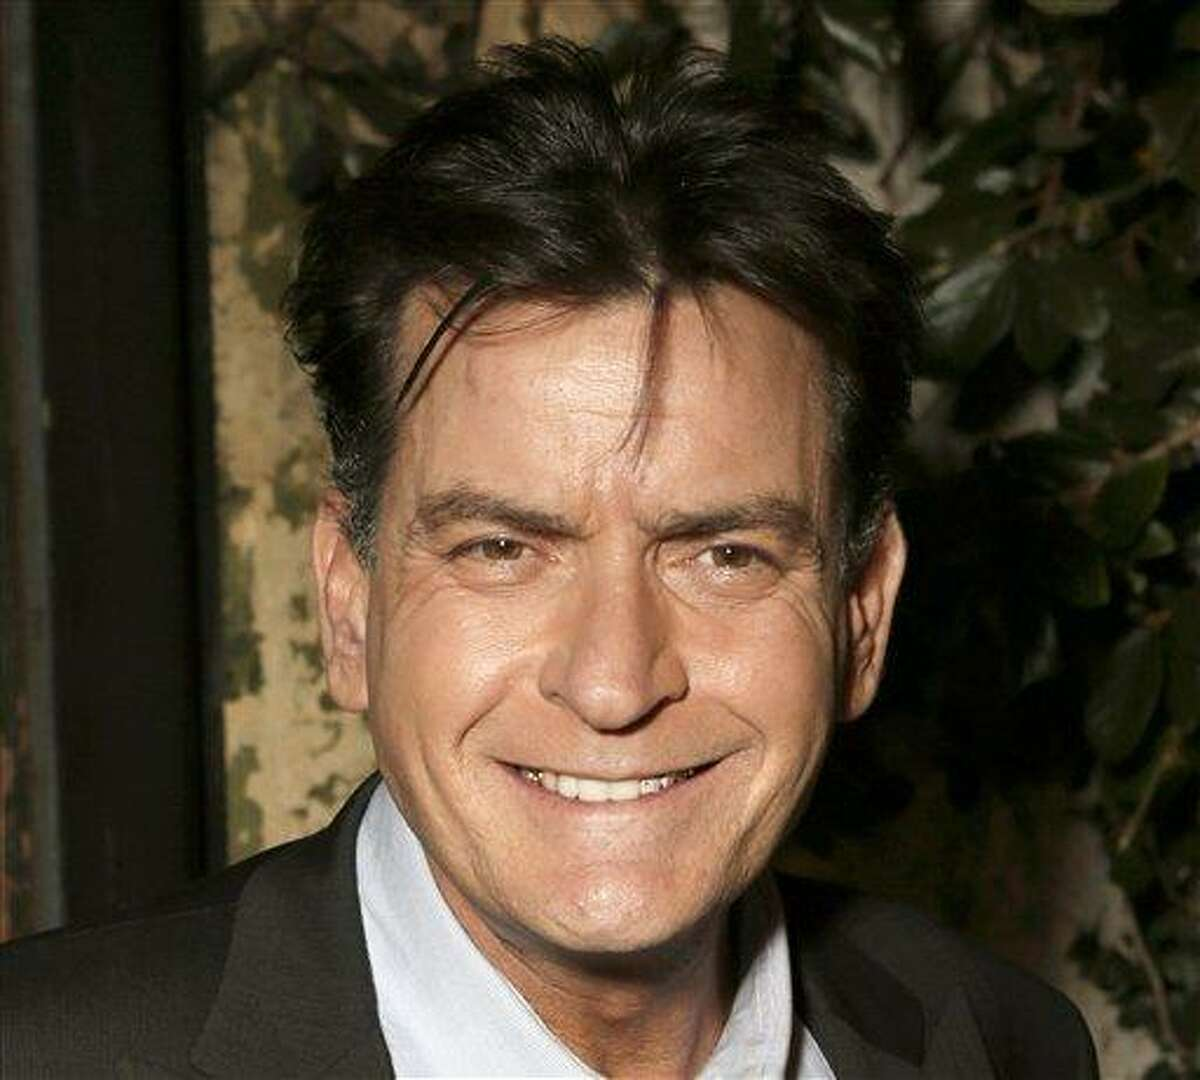 Charlie Sheen has pledged at least $1 million to the USO. Associated Press